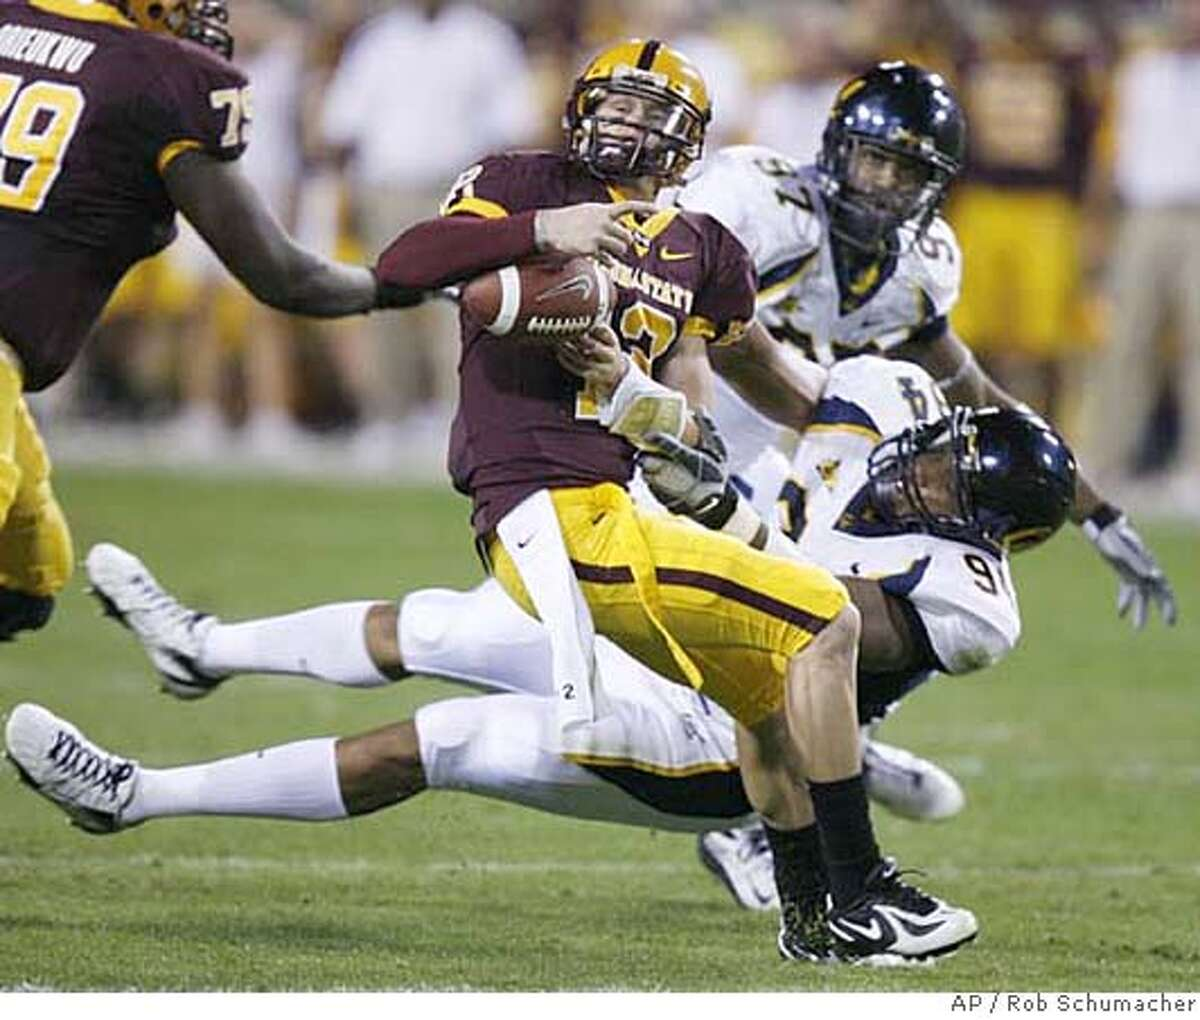 California's Rulon Davis (94) forces Arizona State quarterback Rudy Carpenter to fumble the ball during the first quarter of a college football game at Sun Devil Staduim Saturday, Oct. 27, 2007, in Tempe, Ariz.. Cal's Cameron Jordan (97) returned the fumble for a touchdown. (AP Photo/The Arizona Republic, Rob Schumacher)